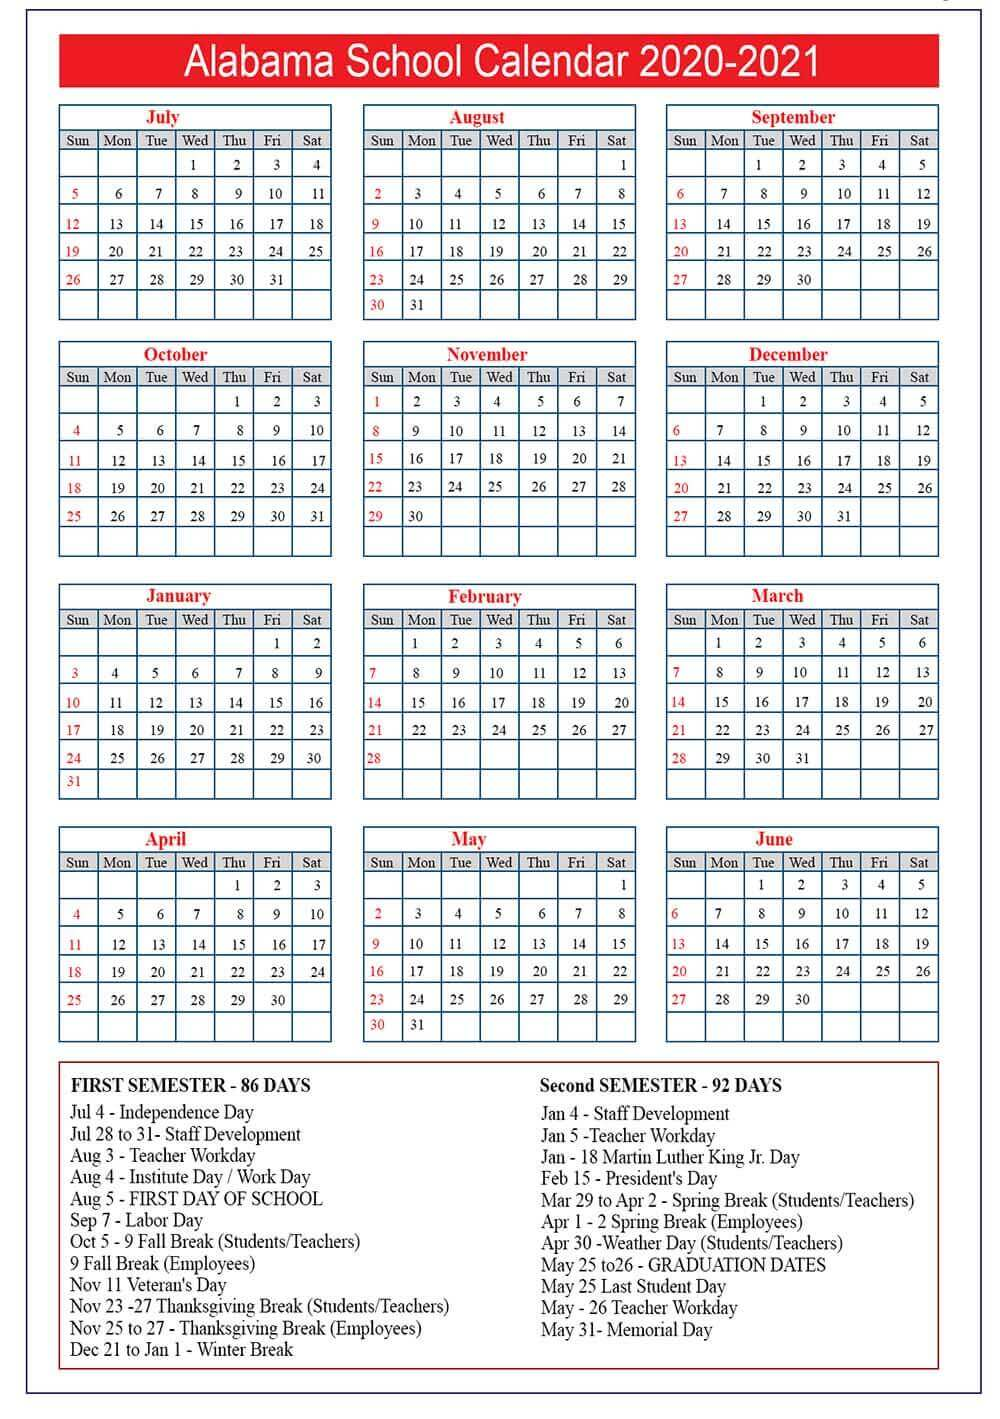 Alabama School Calendar 2020- 2021